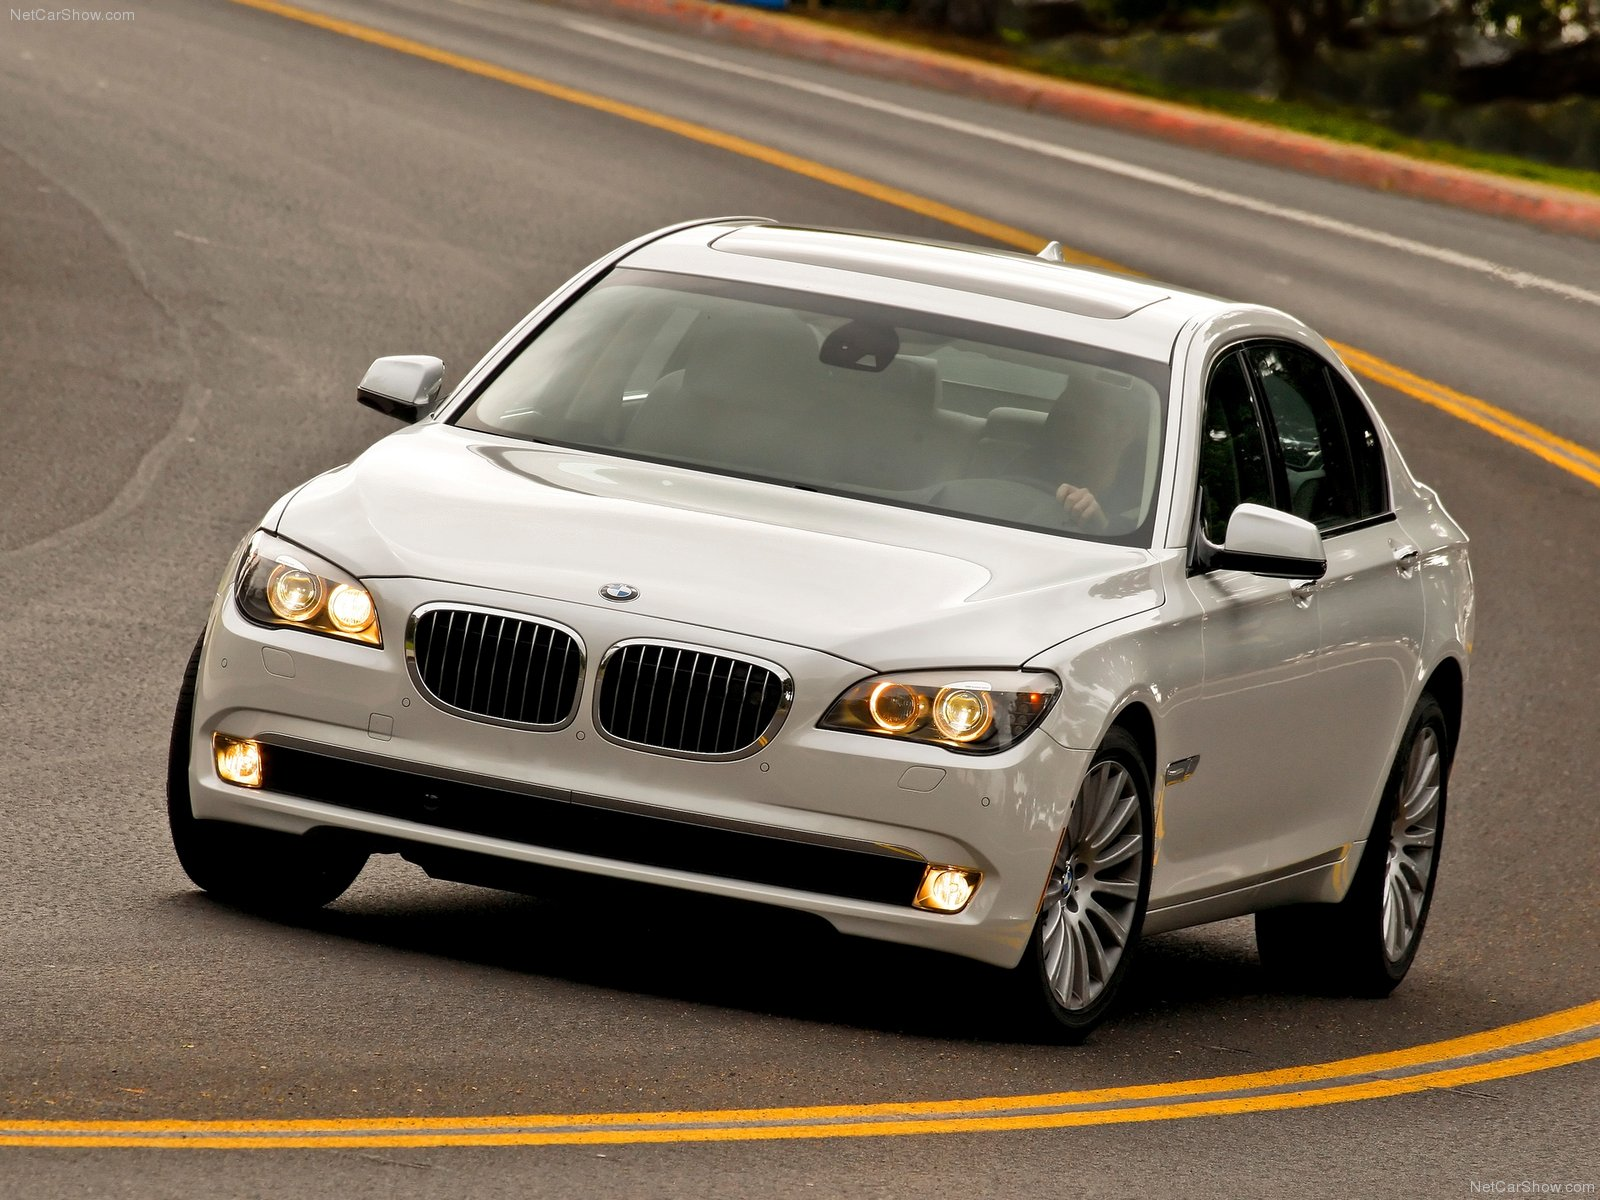 BMW 7-series F01 F02 picture # 81164 | BMW photo gallery ...